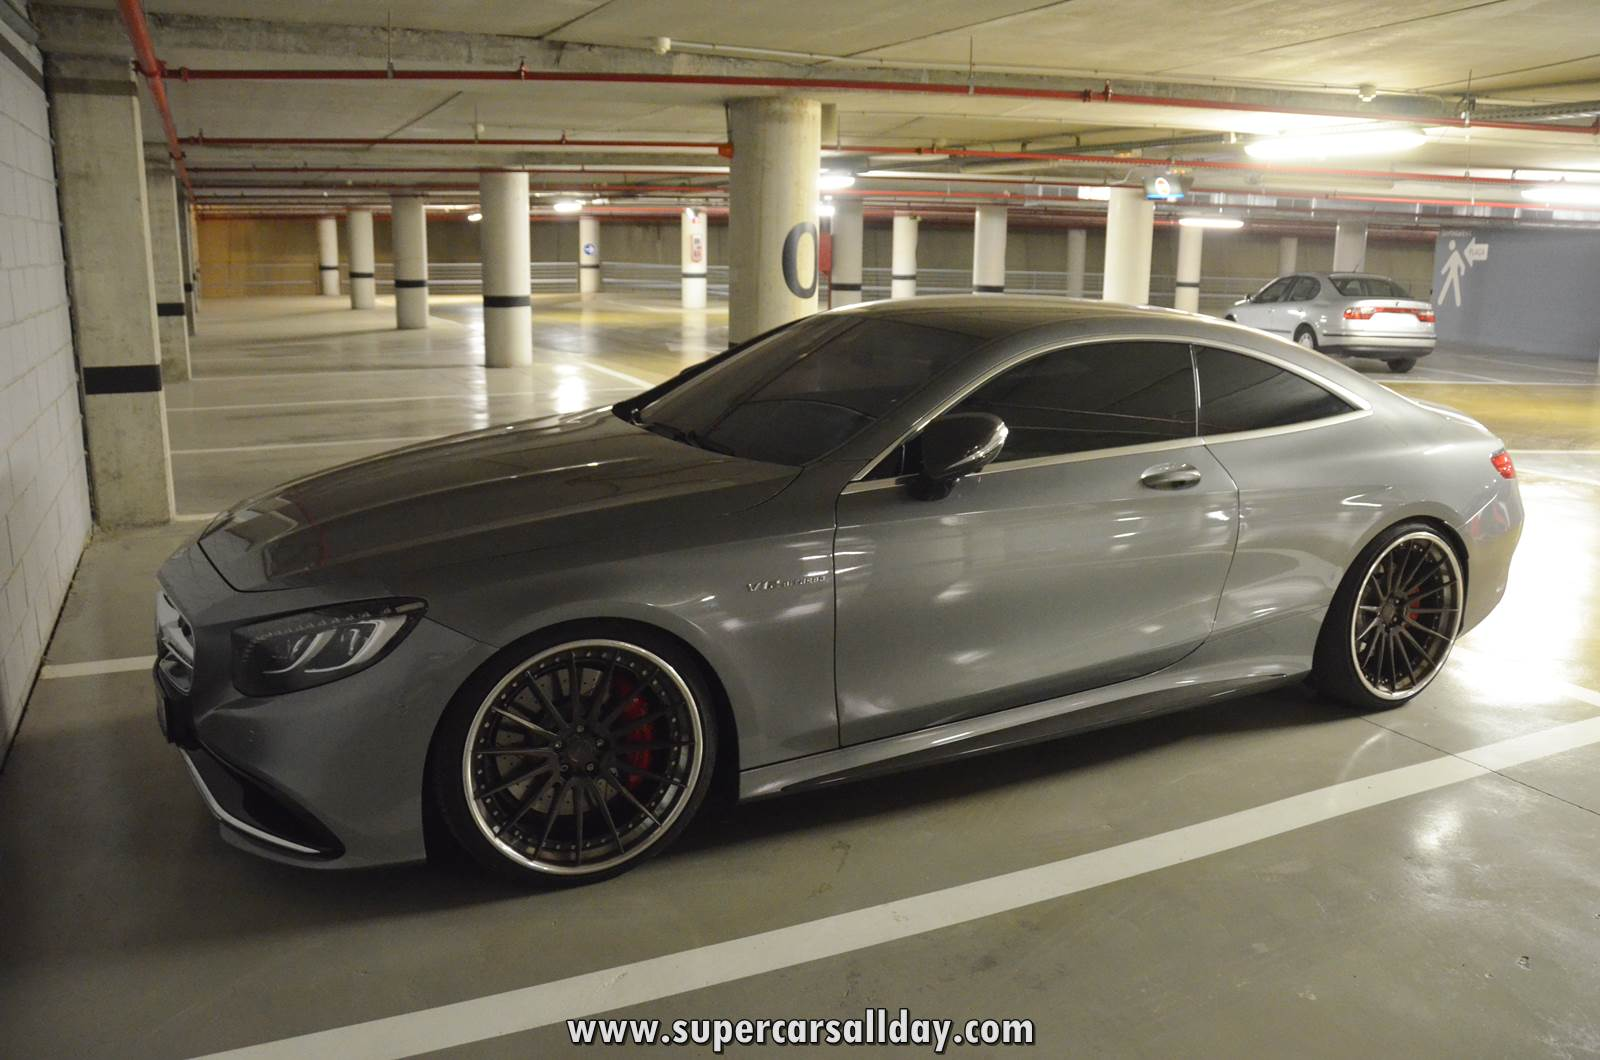 Mercedes benz s65 amg coupe with adv supercars all day for 2017 amg s 65 mercedes benz